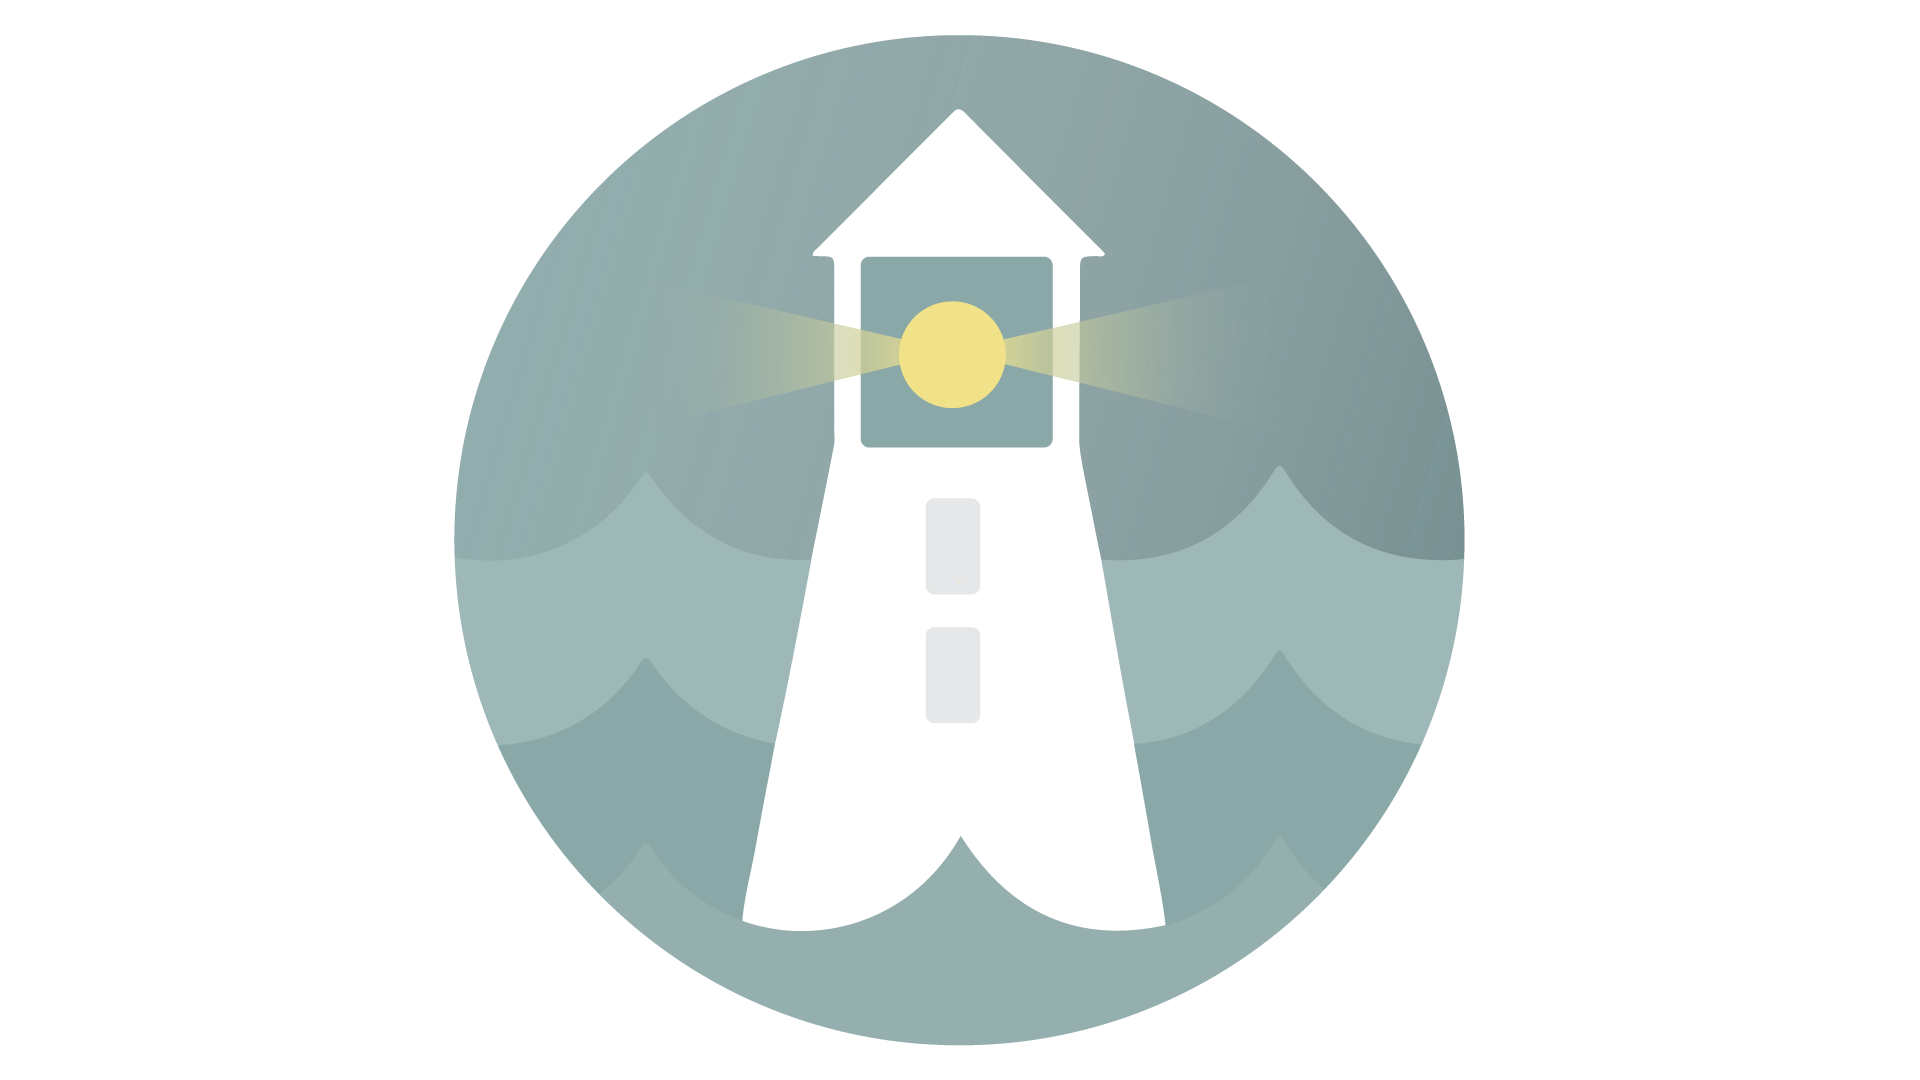 Citycons_lighthouse_icon-icons.com_67922.png